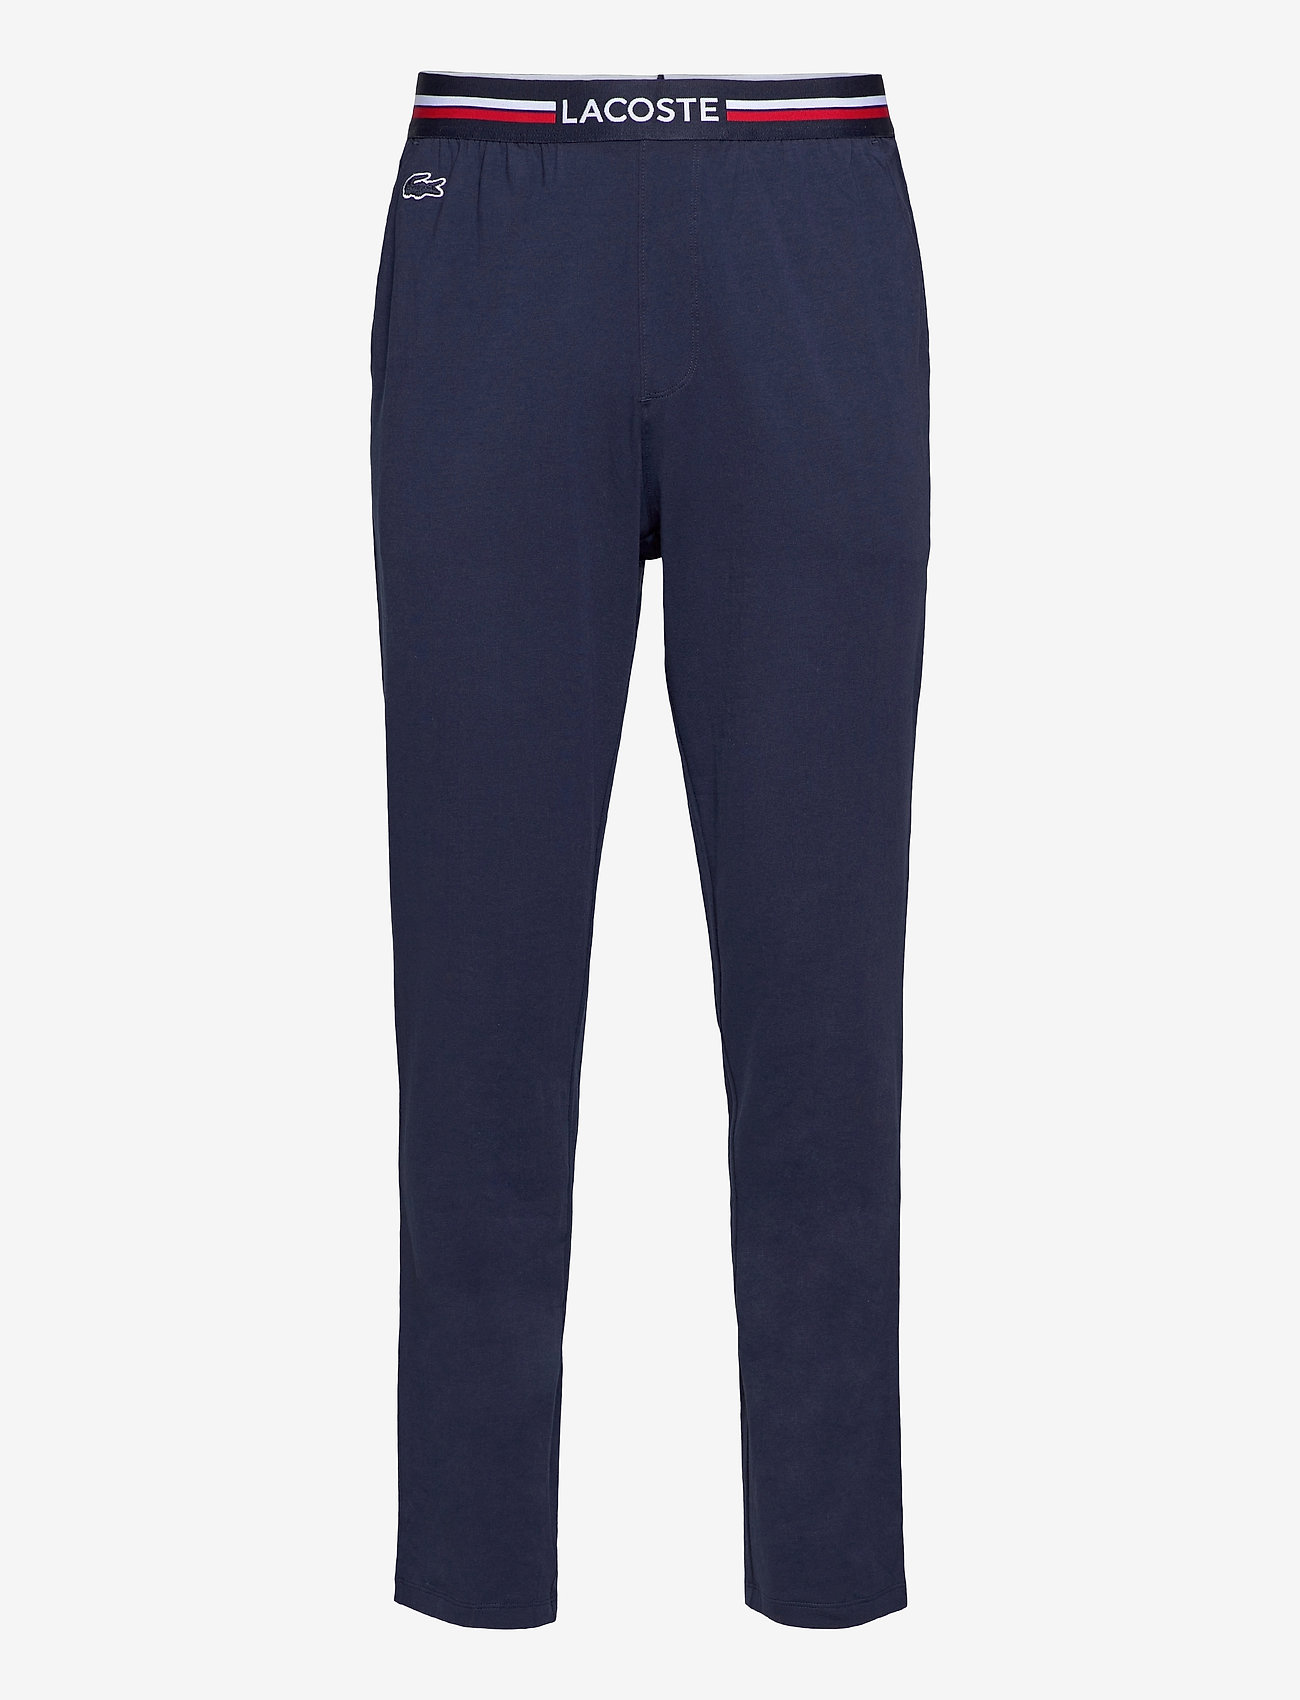 Lacoste - Pyjamas pants men - bottoms - navy blue - 0